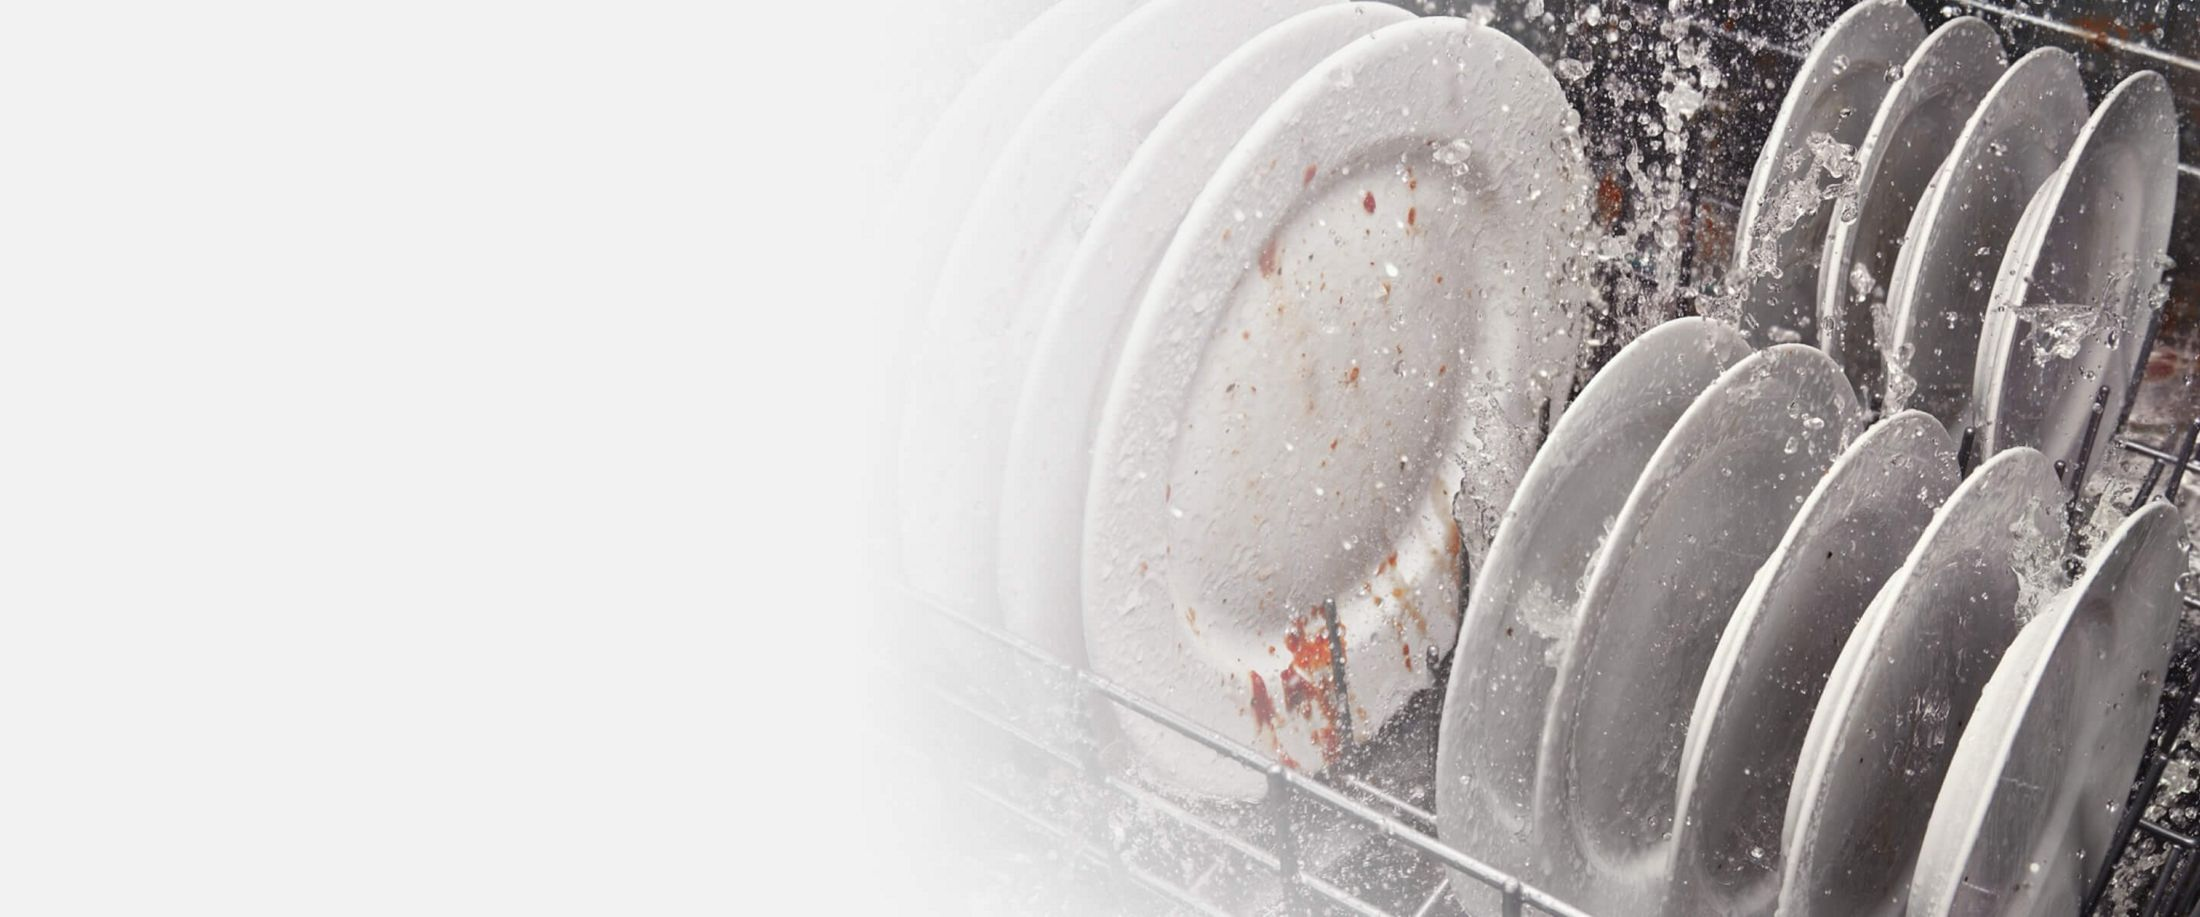 Whirlpool® Dishwashers let you choose the right cycle and option for whatever you're washing